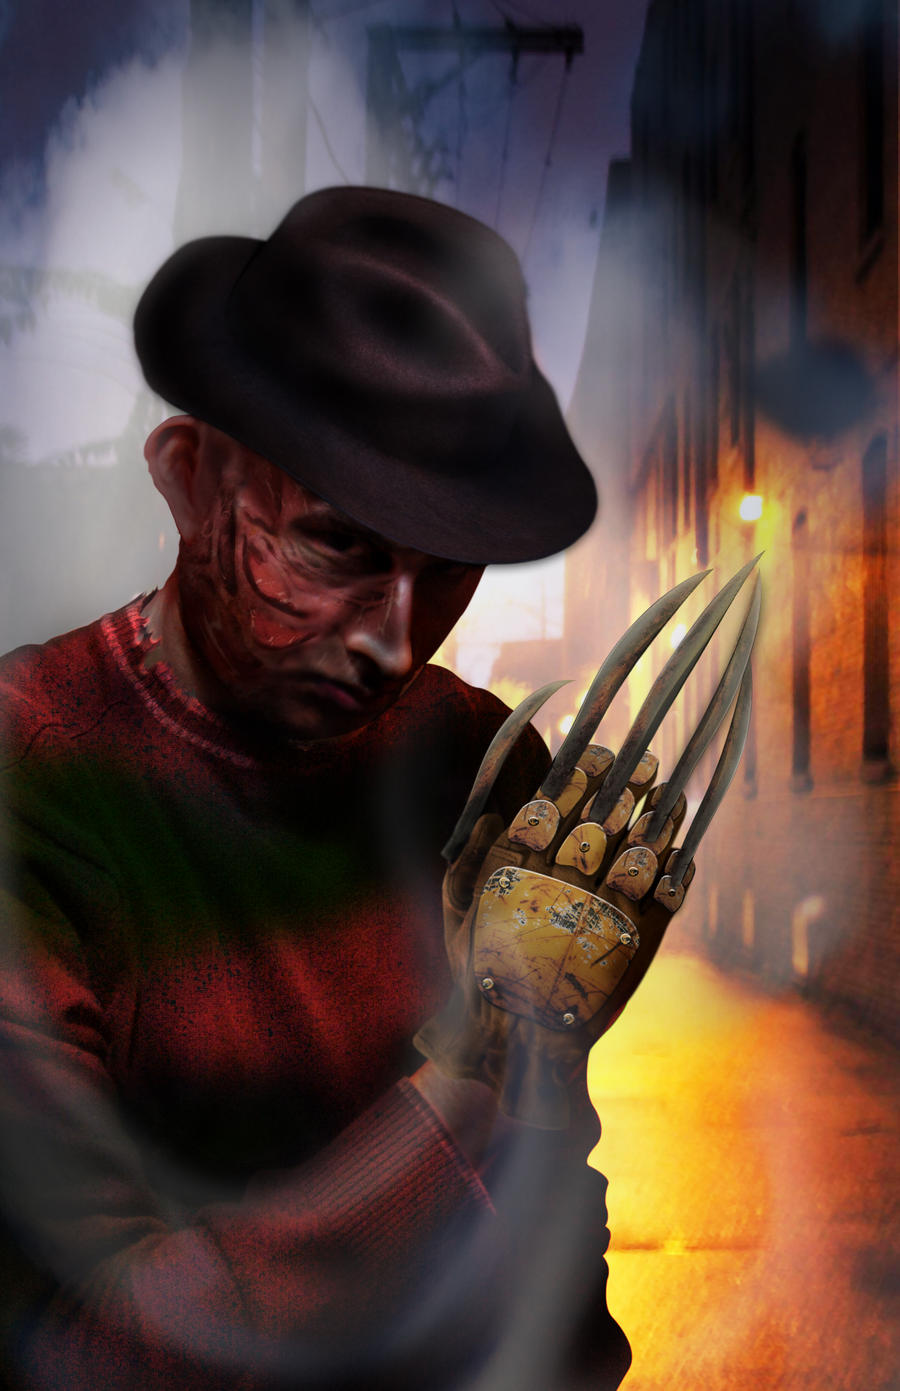 Me as Freddy by estkm